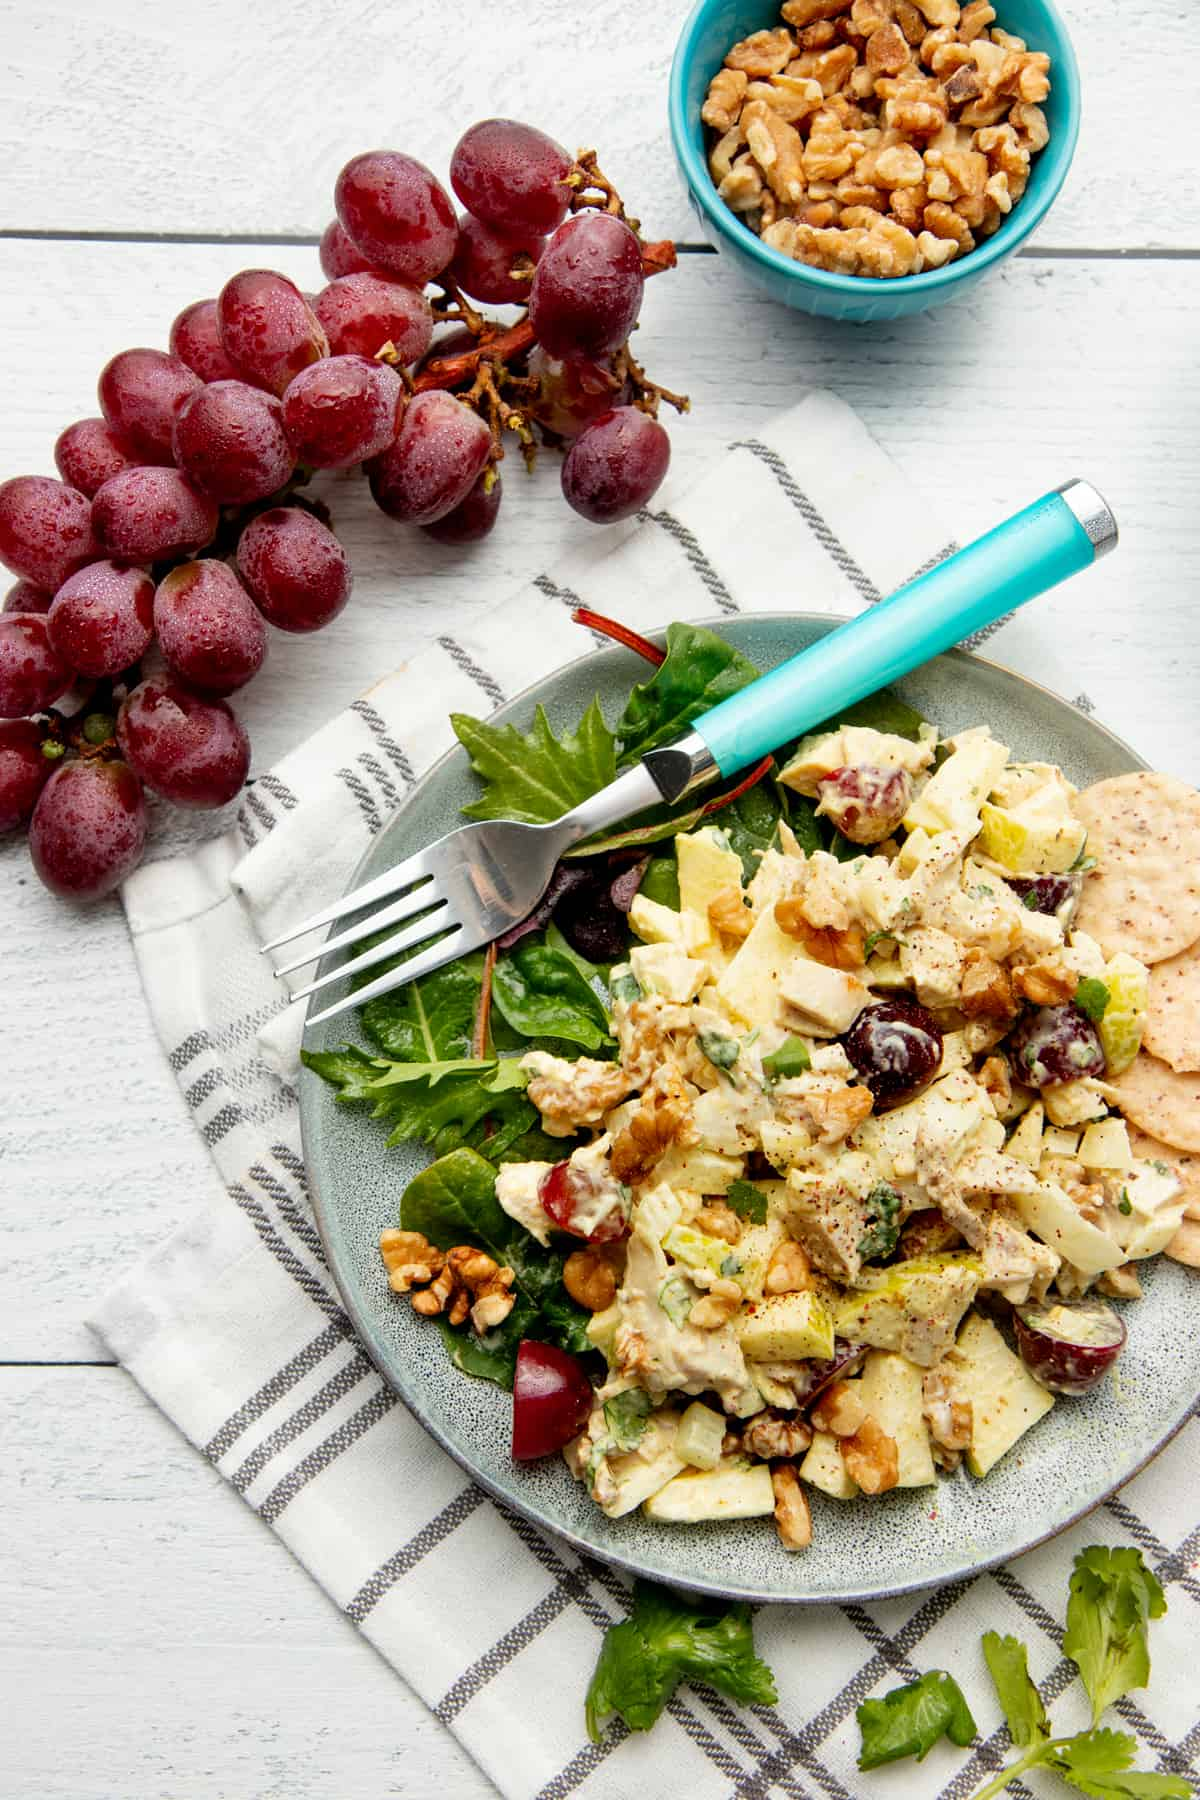 A gray plate holds chicken salad and lettuces. A blue fork rests on the plate. Red grapes also sit on a white wooden counter.